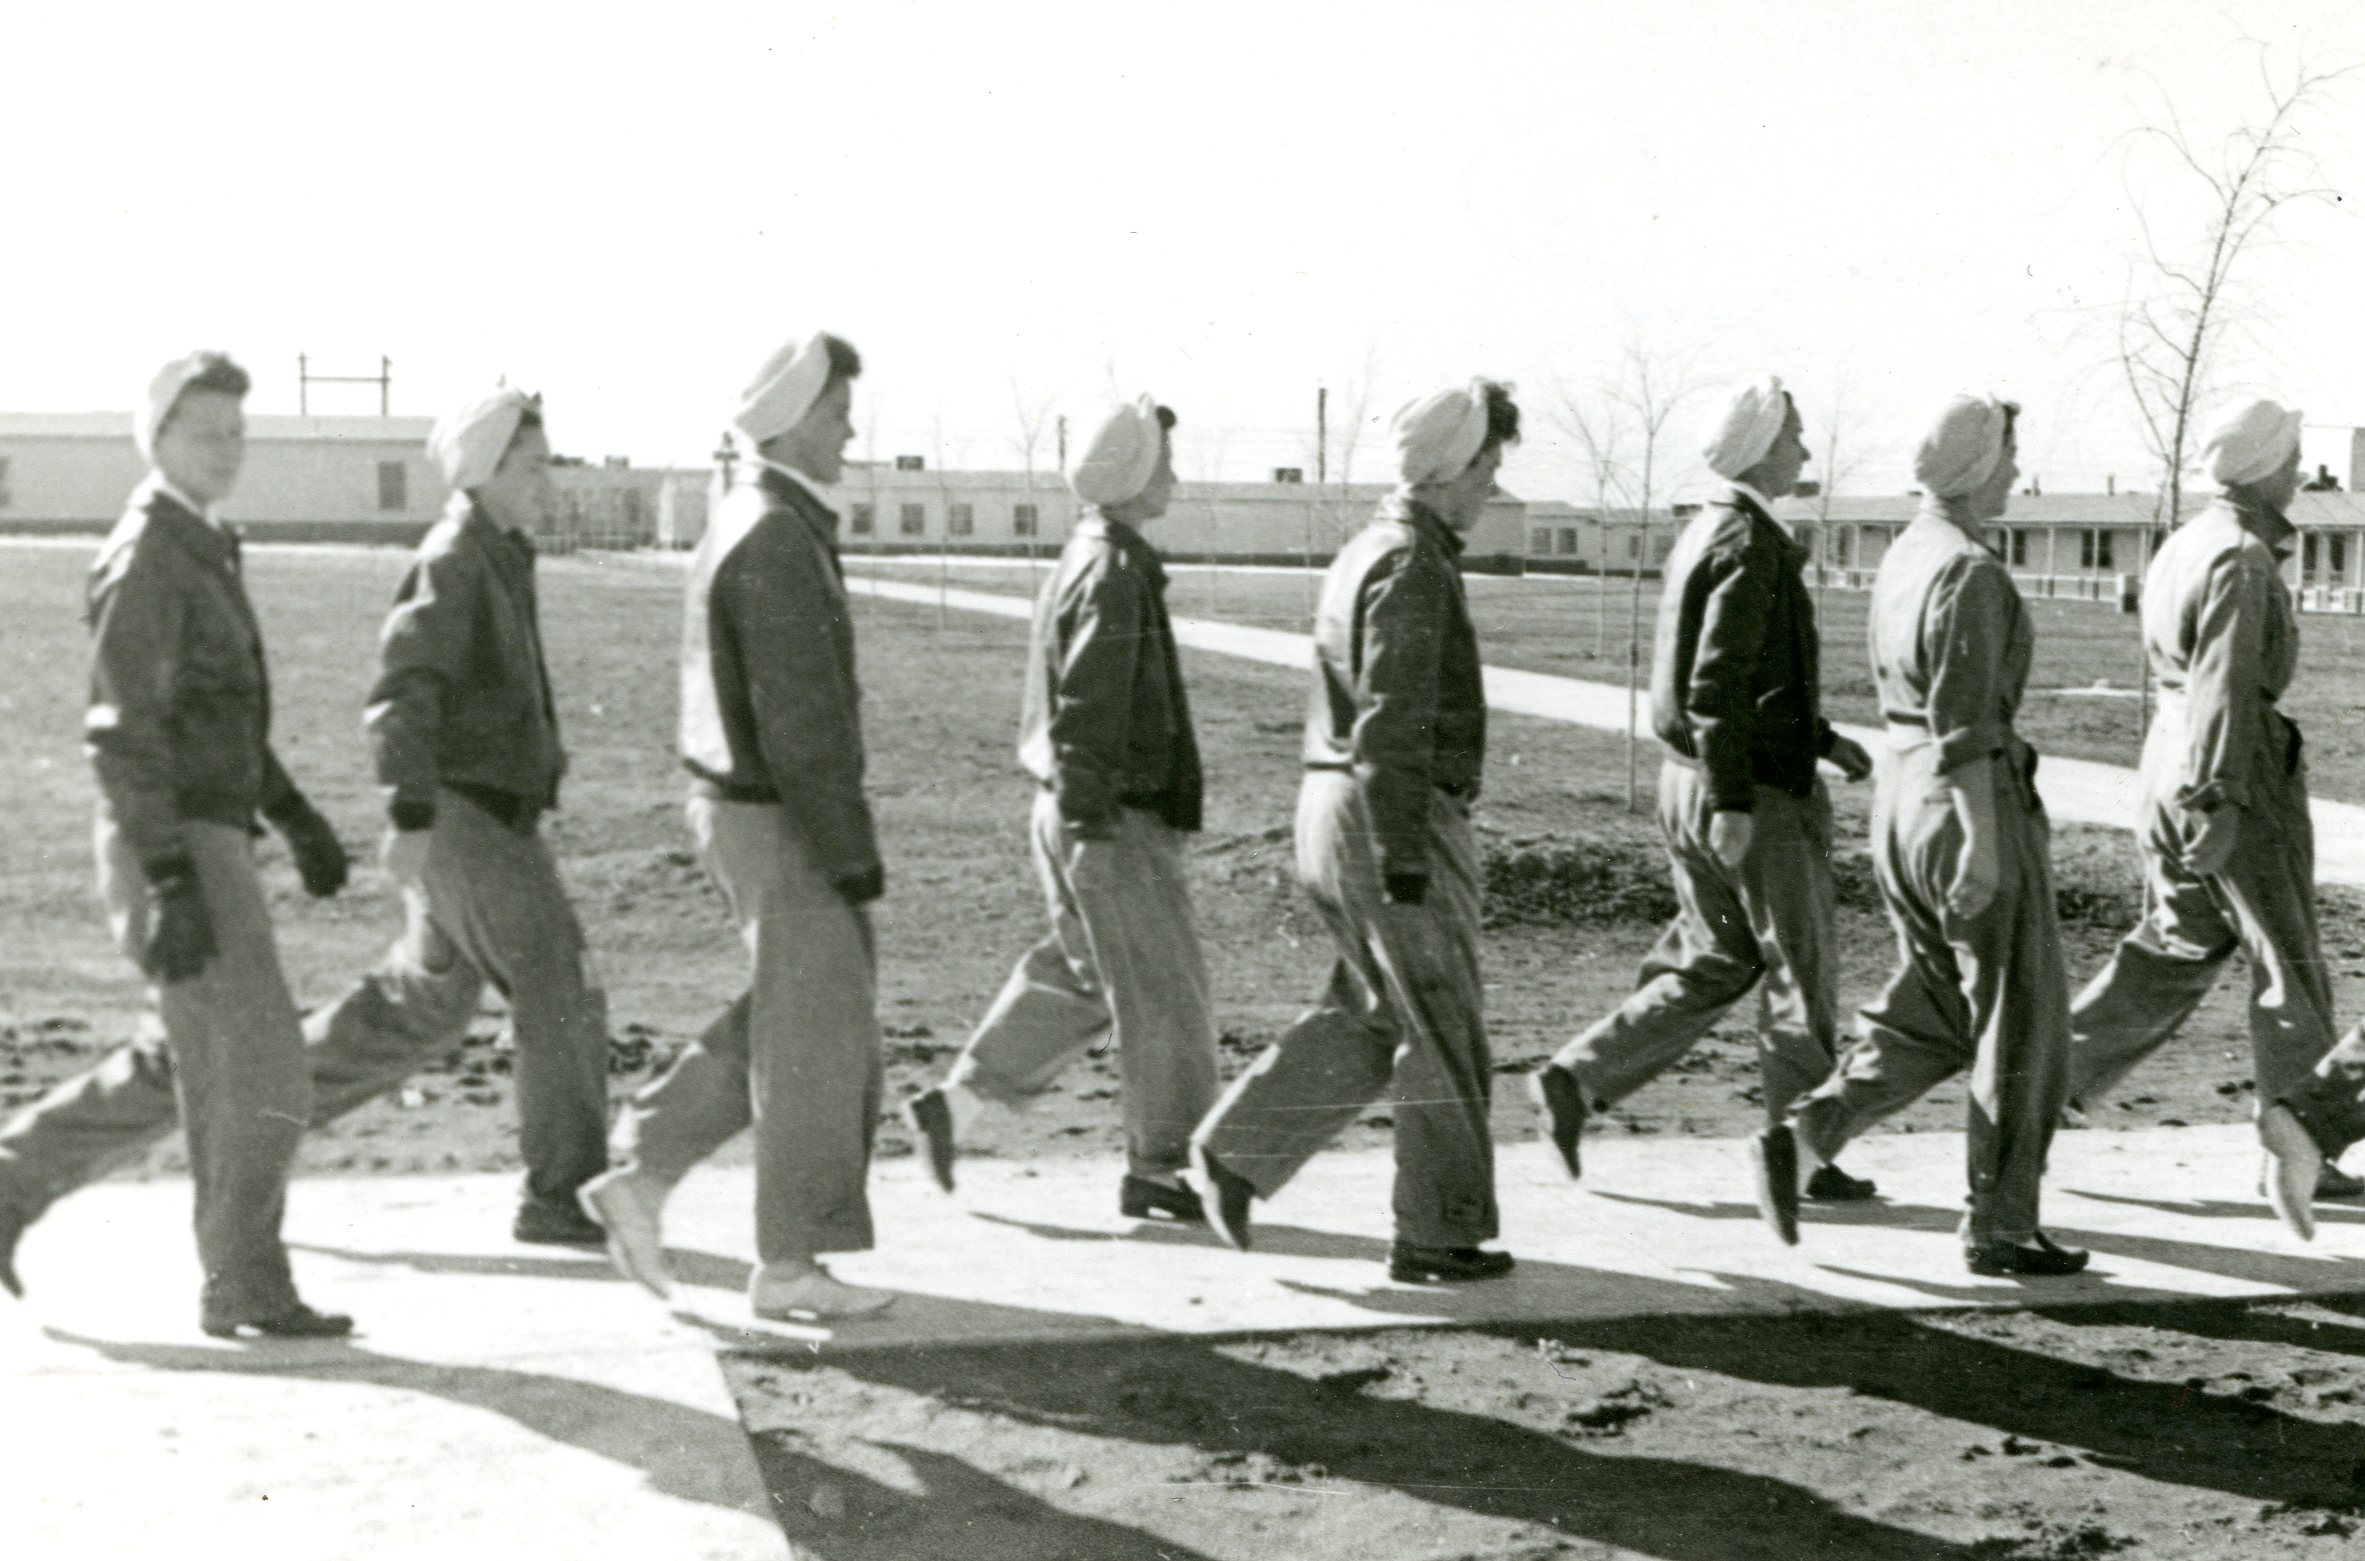 WASP class 44-W-1 marching